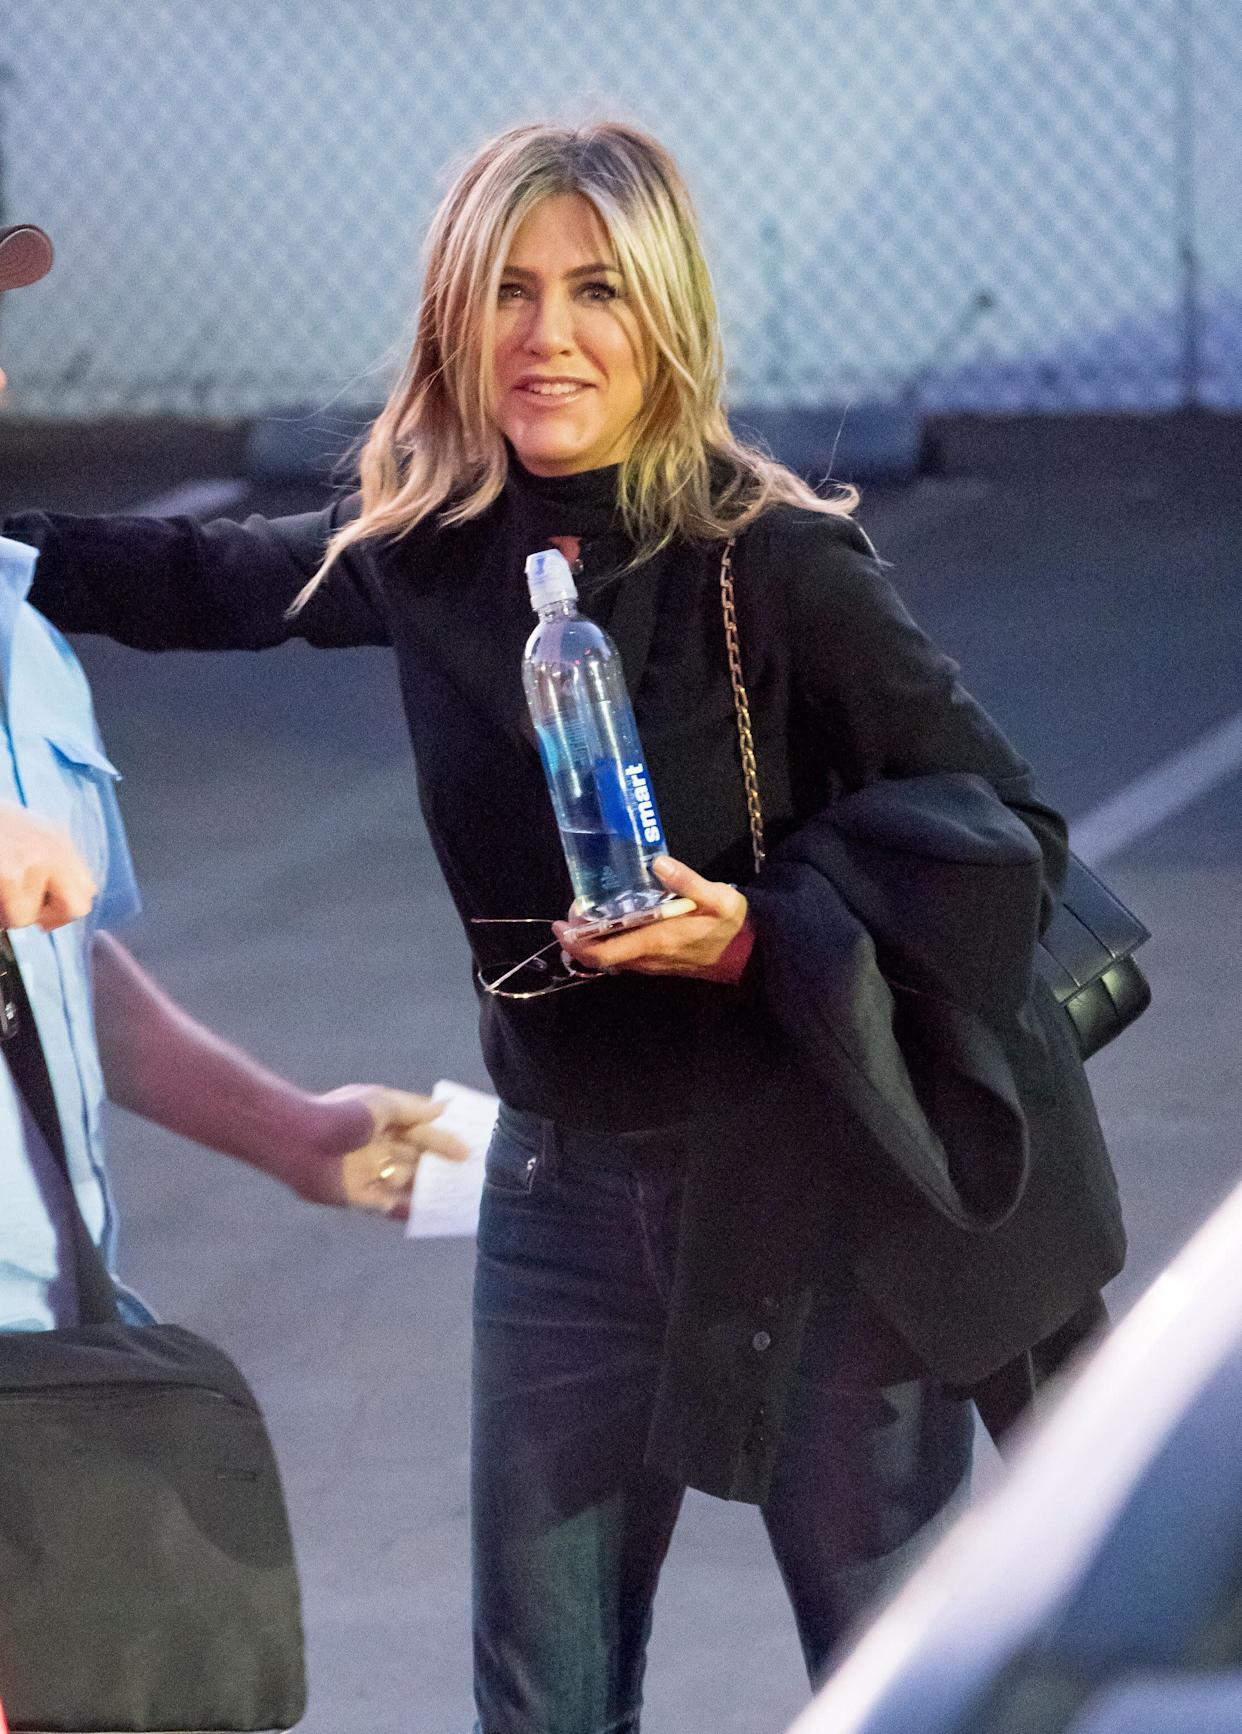 LOS ANGELES, CA - DECEMBER 05: Jennifer Aniston is seen at 'Jimmy Kimmel Live' on December 05, 2017 in Los Angeles, California. (Photo by RB/Bauer-Griffin/GC Images)